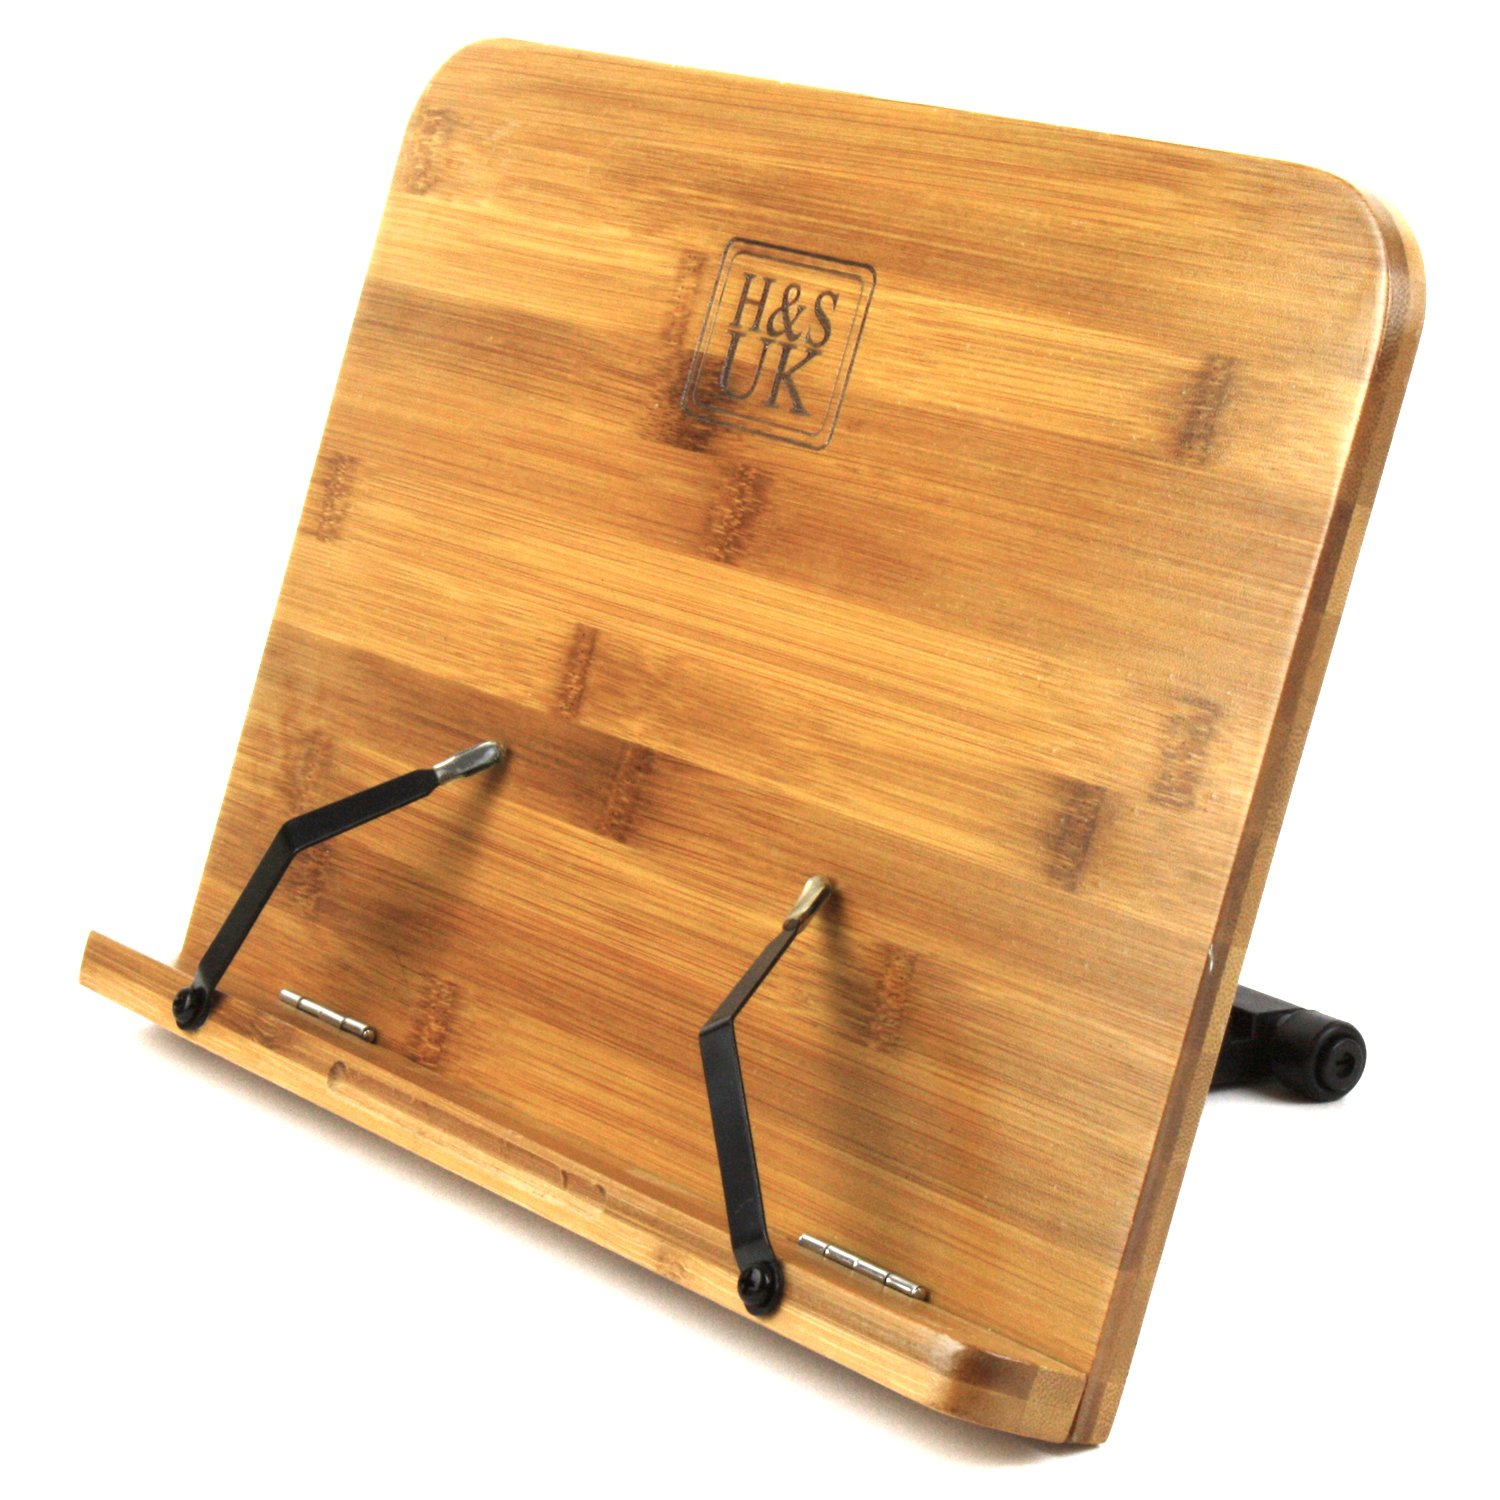 h s bamboo reading rest cookbook cook recipe kitchen book holder